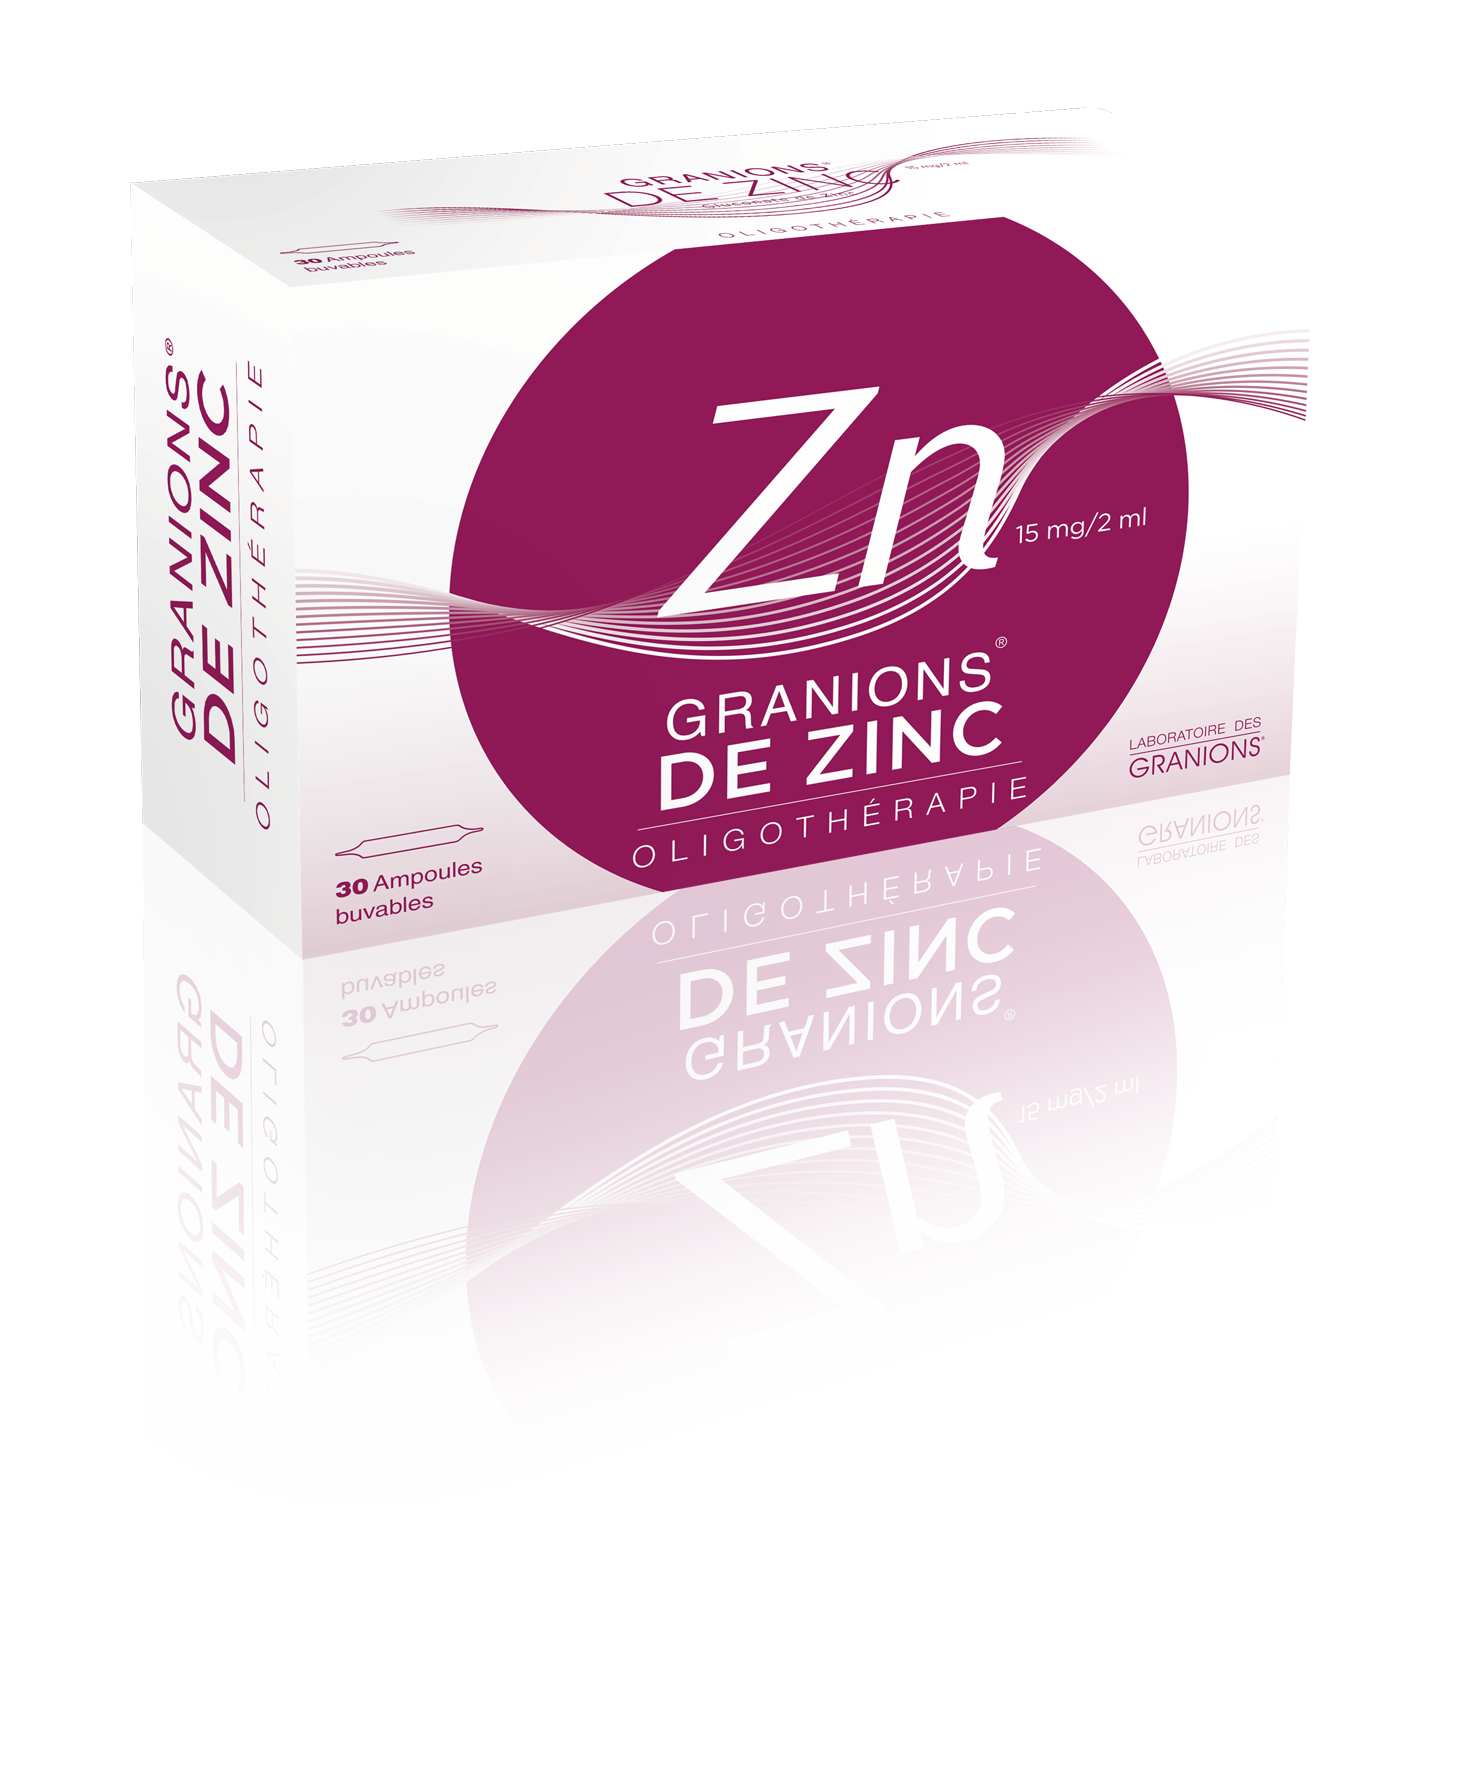 Image GRANIONS DE ZINC 15 mg/2 ml S buv 30Amp/2ml